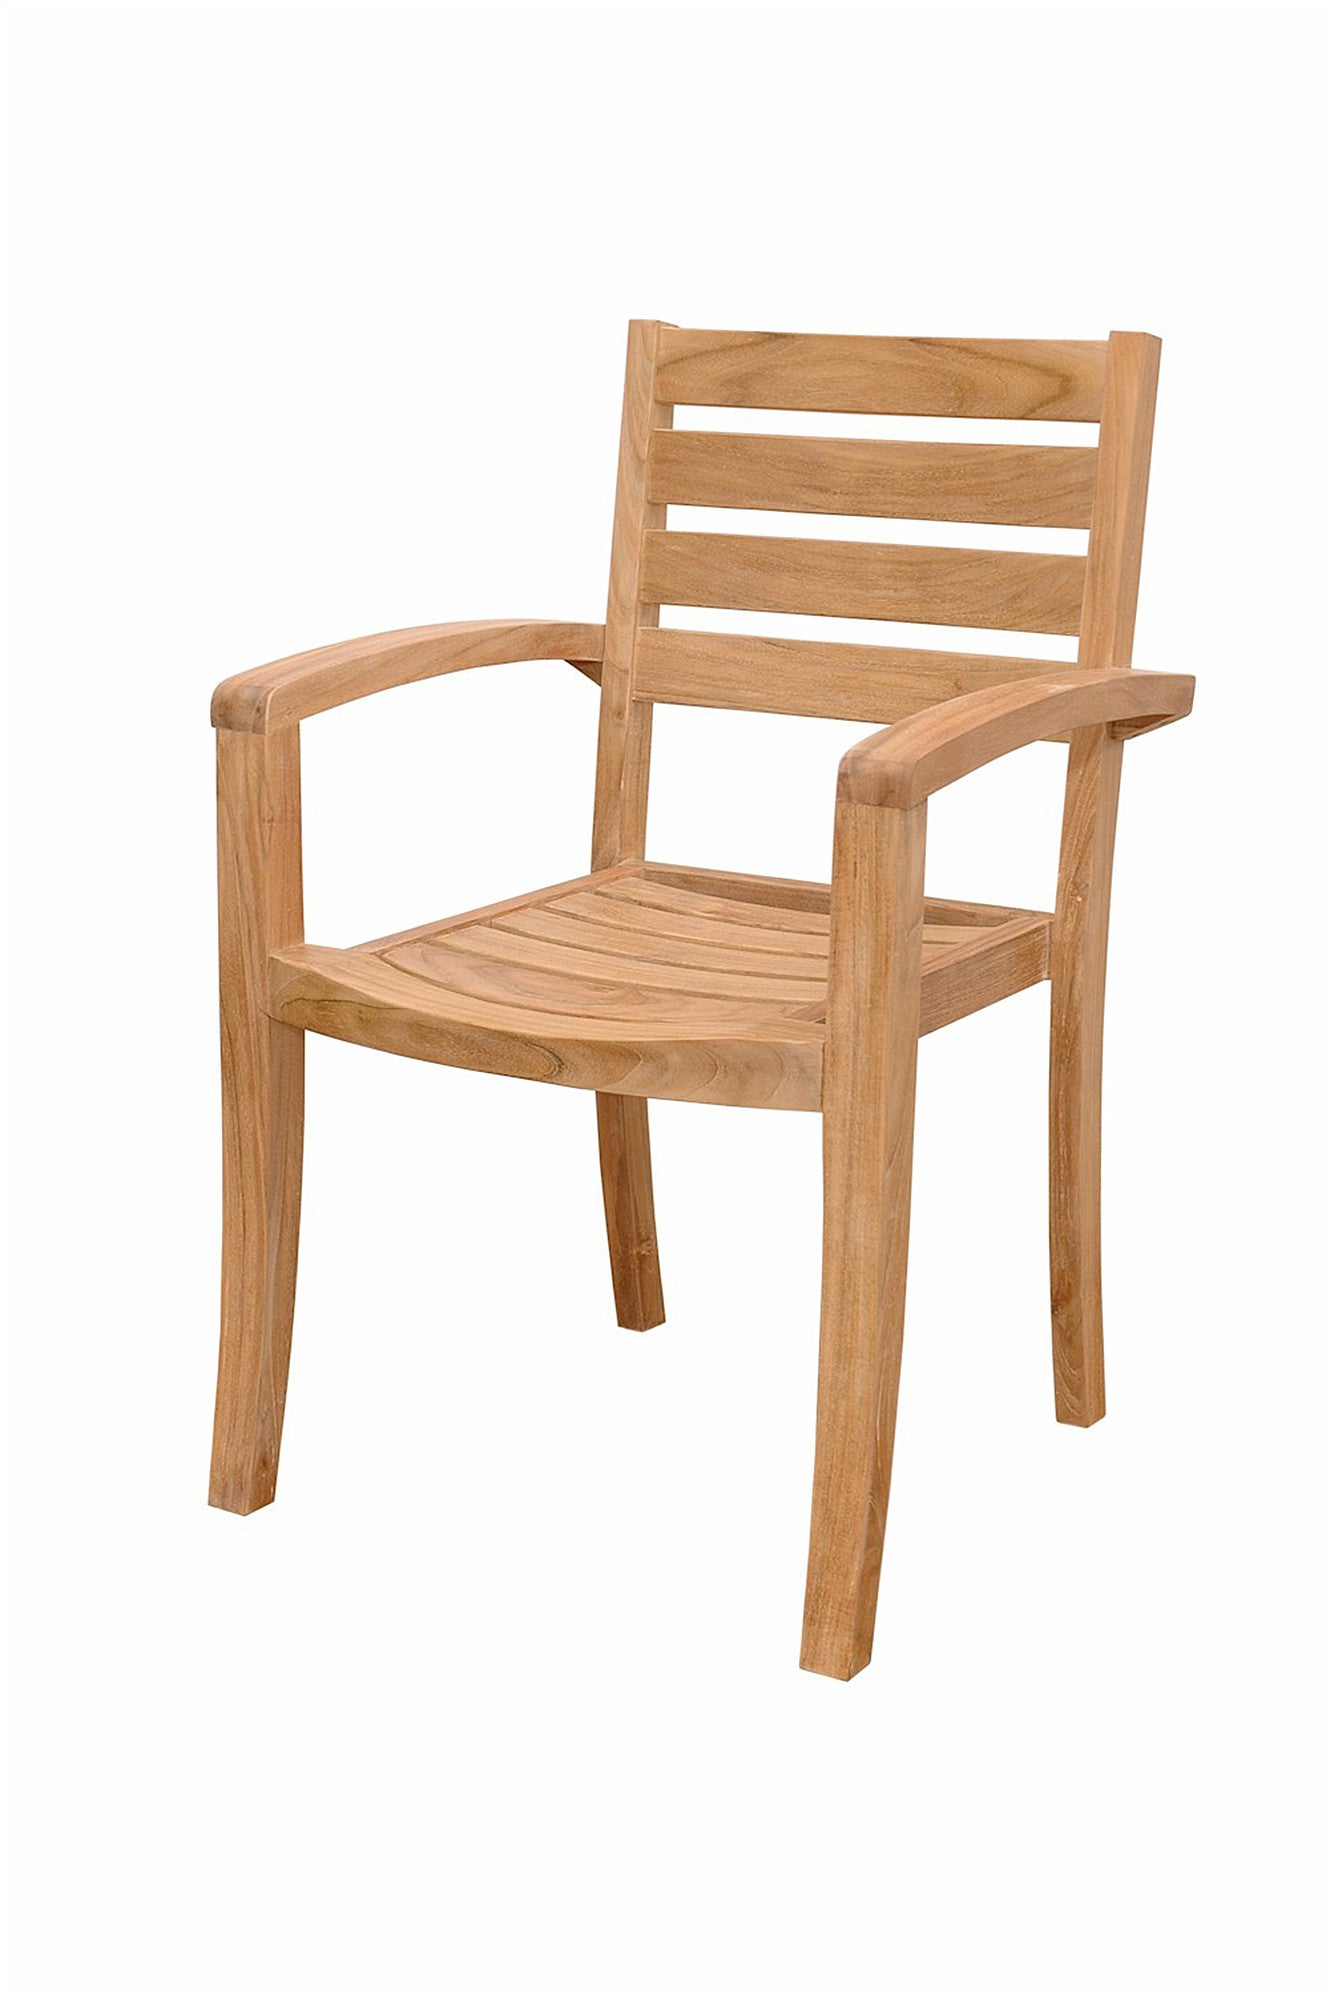 Anderson Teak | Stackable Teak Armchair Catalina Set Of 4 Chairs |CHS 033